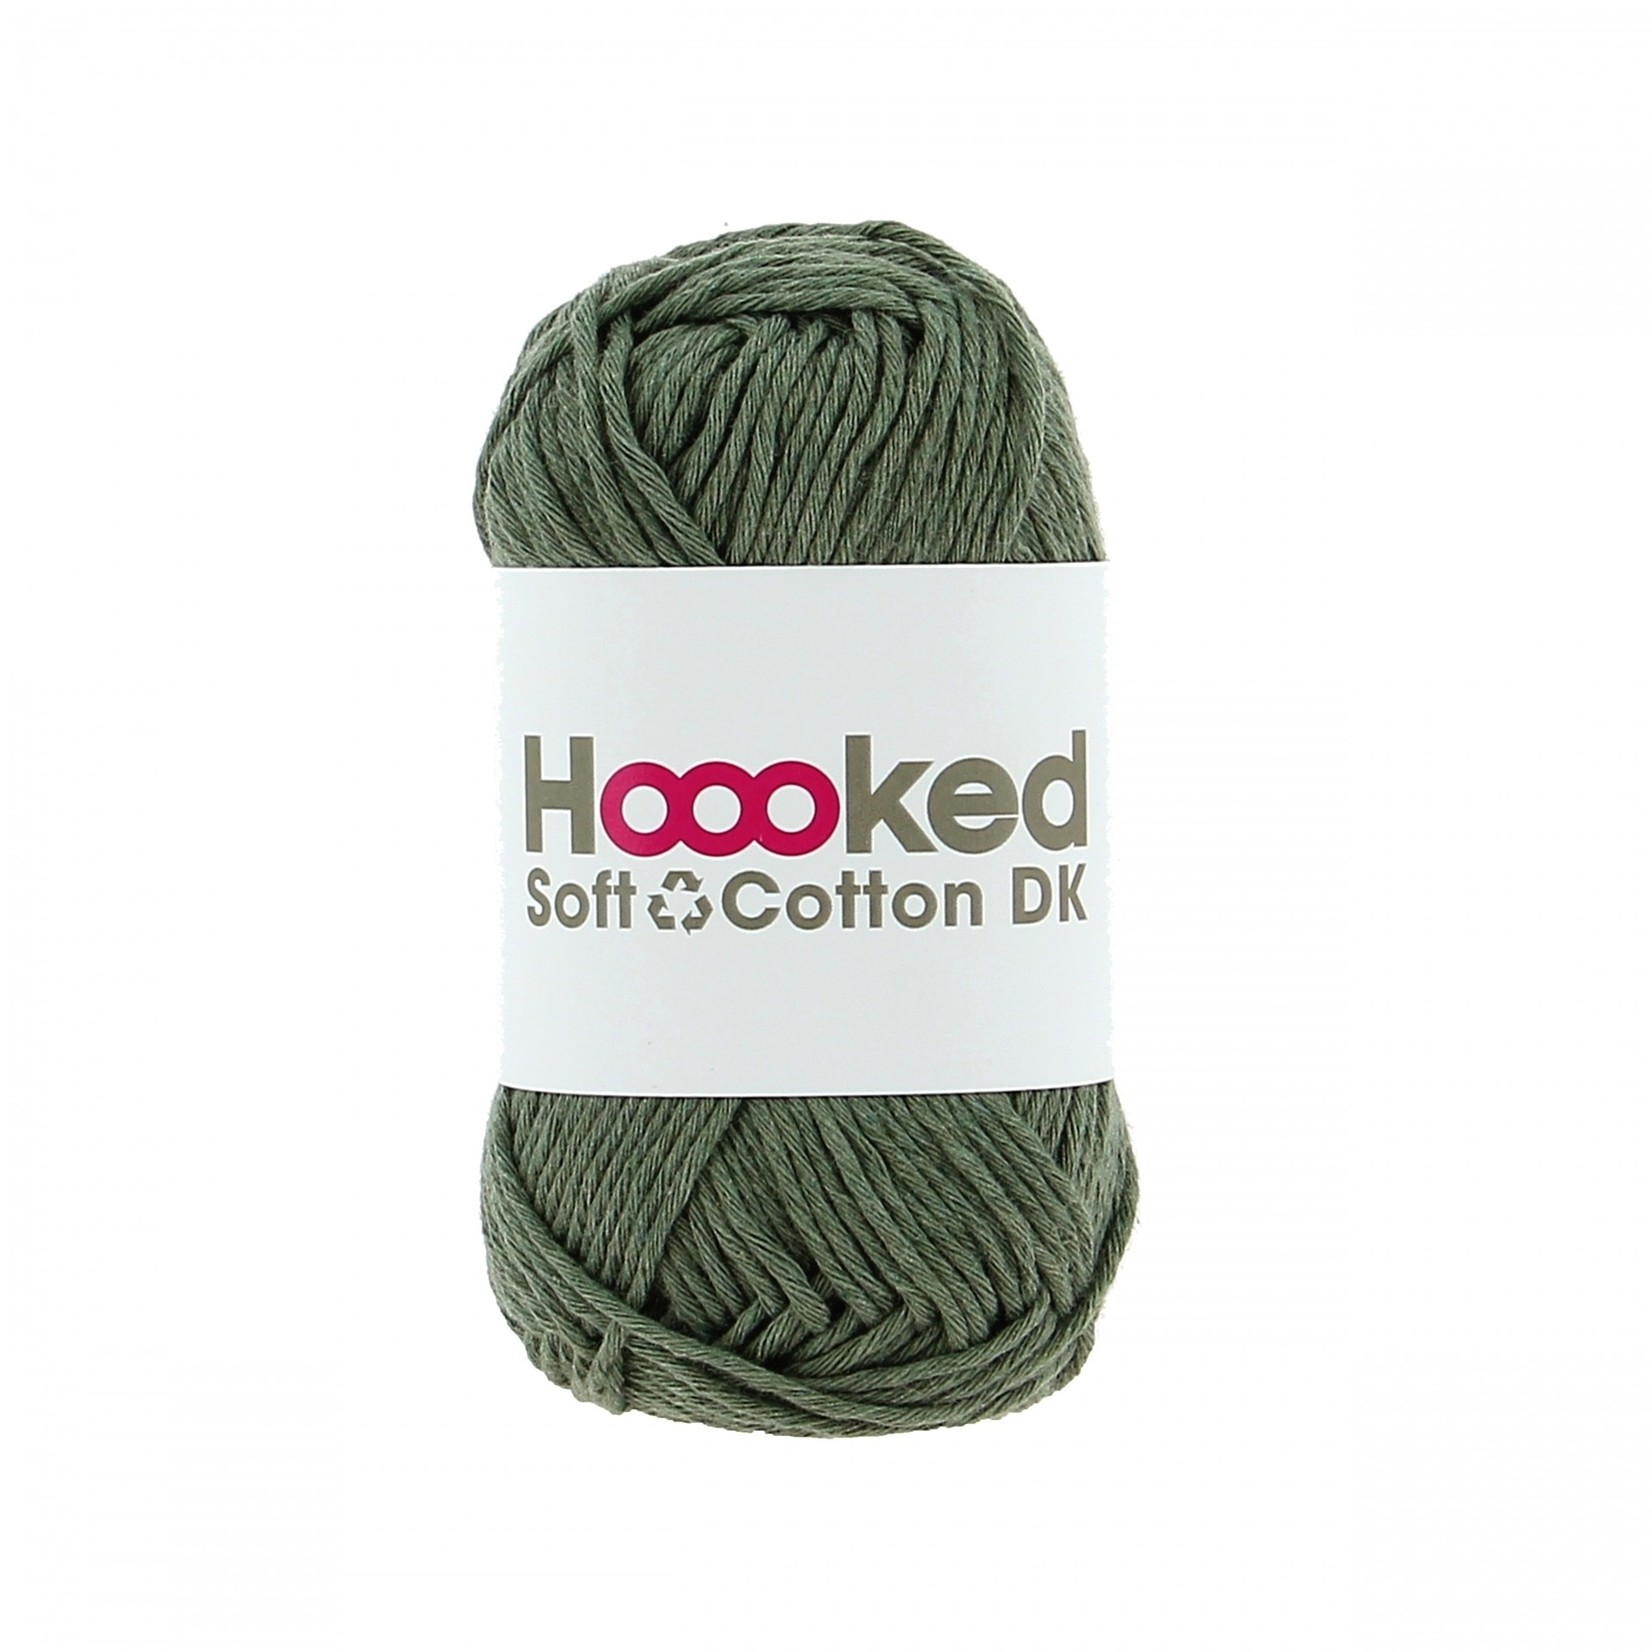 Hoooked Hoooked Soft Cotton DK Paramaribo Palm 50 gr. / 85 m.